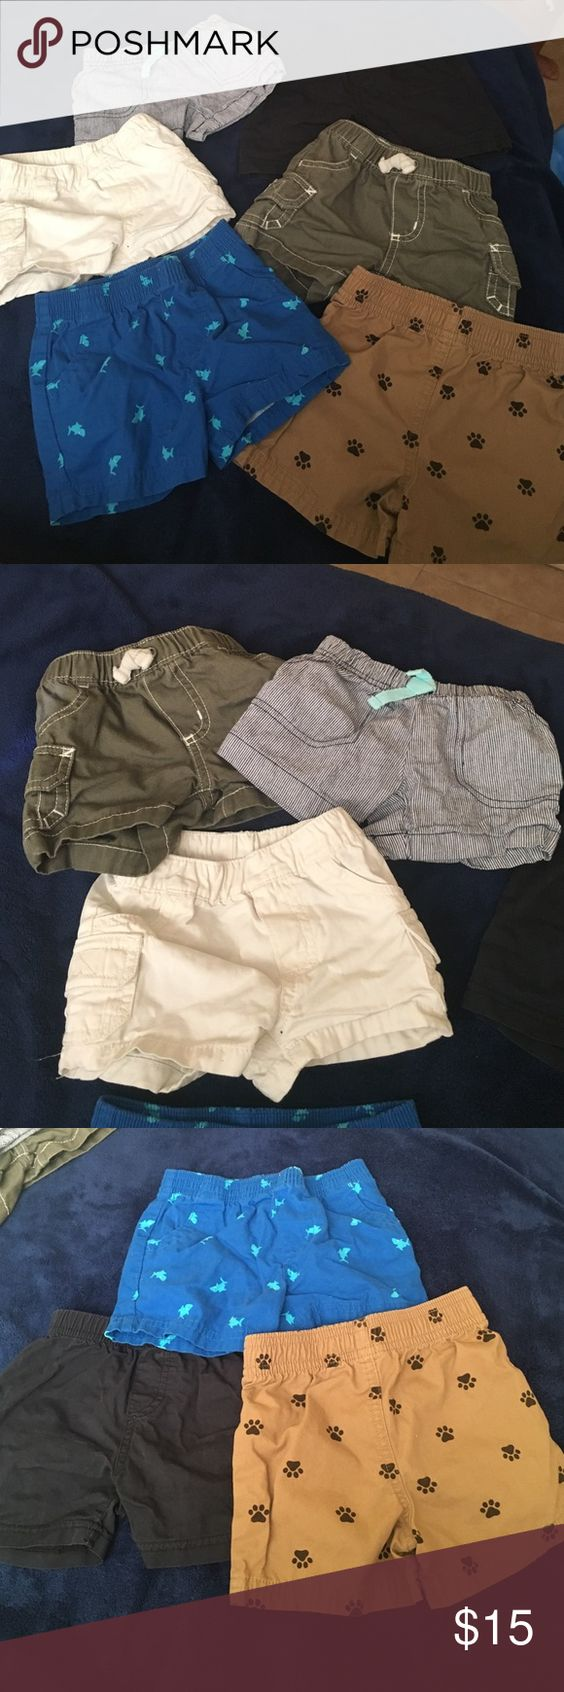 Baby pants 3 carter shorts and 3 other brands. All gently used. Sizes 3months -6. Carter's Bottoms Shorts